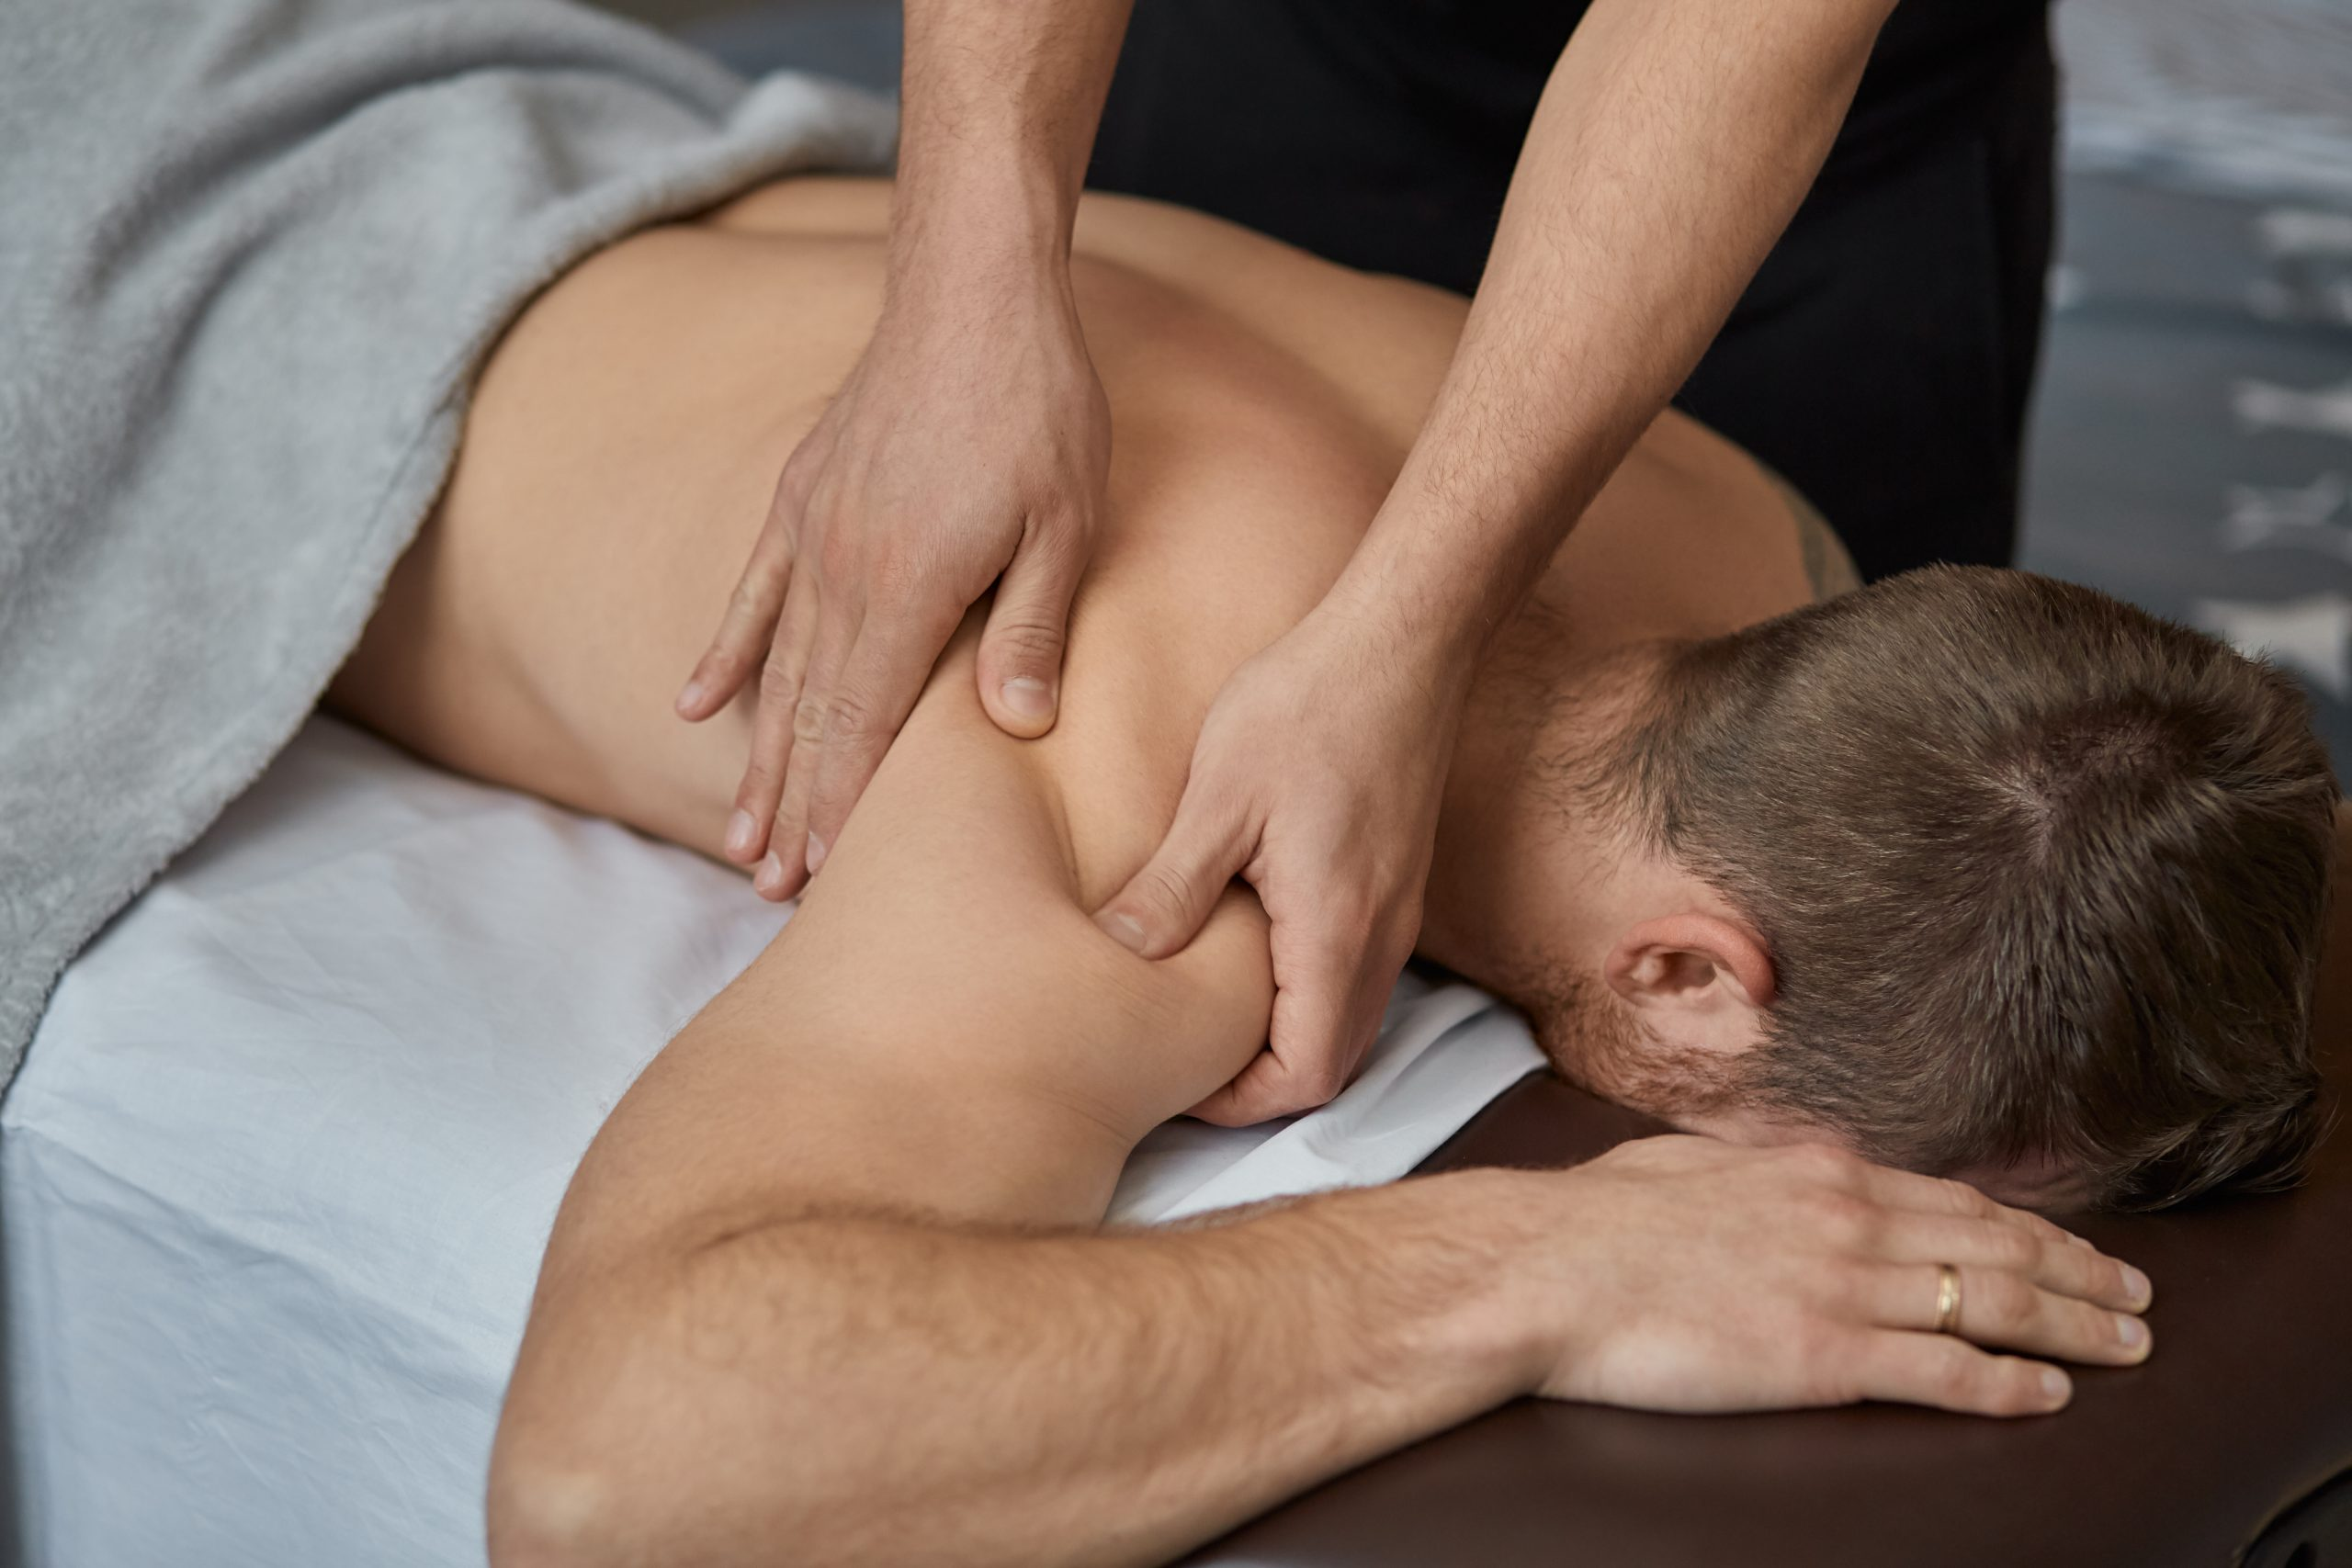 Massage Therapy for wellness, massage therapy for pain prevention, massage therapy Val Boomstra